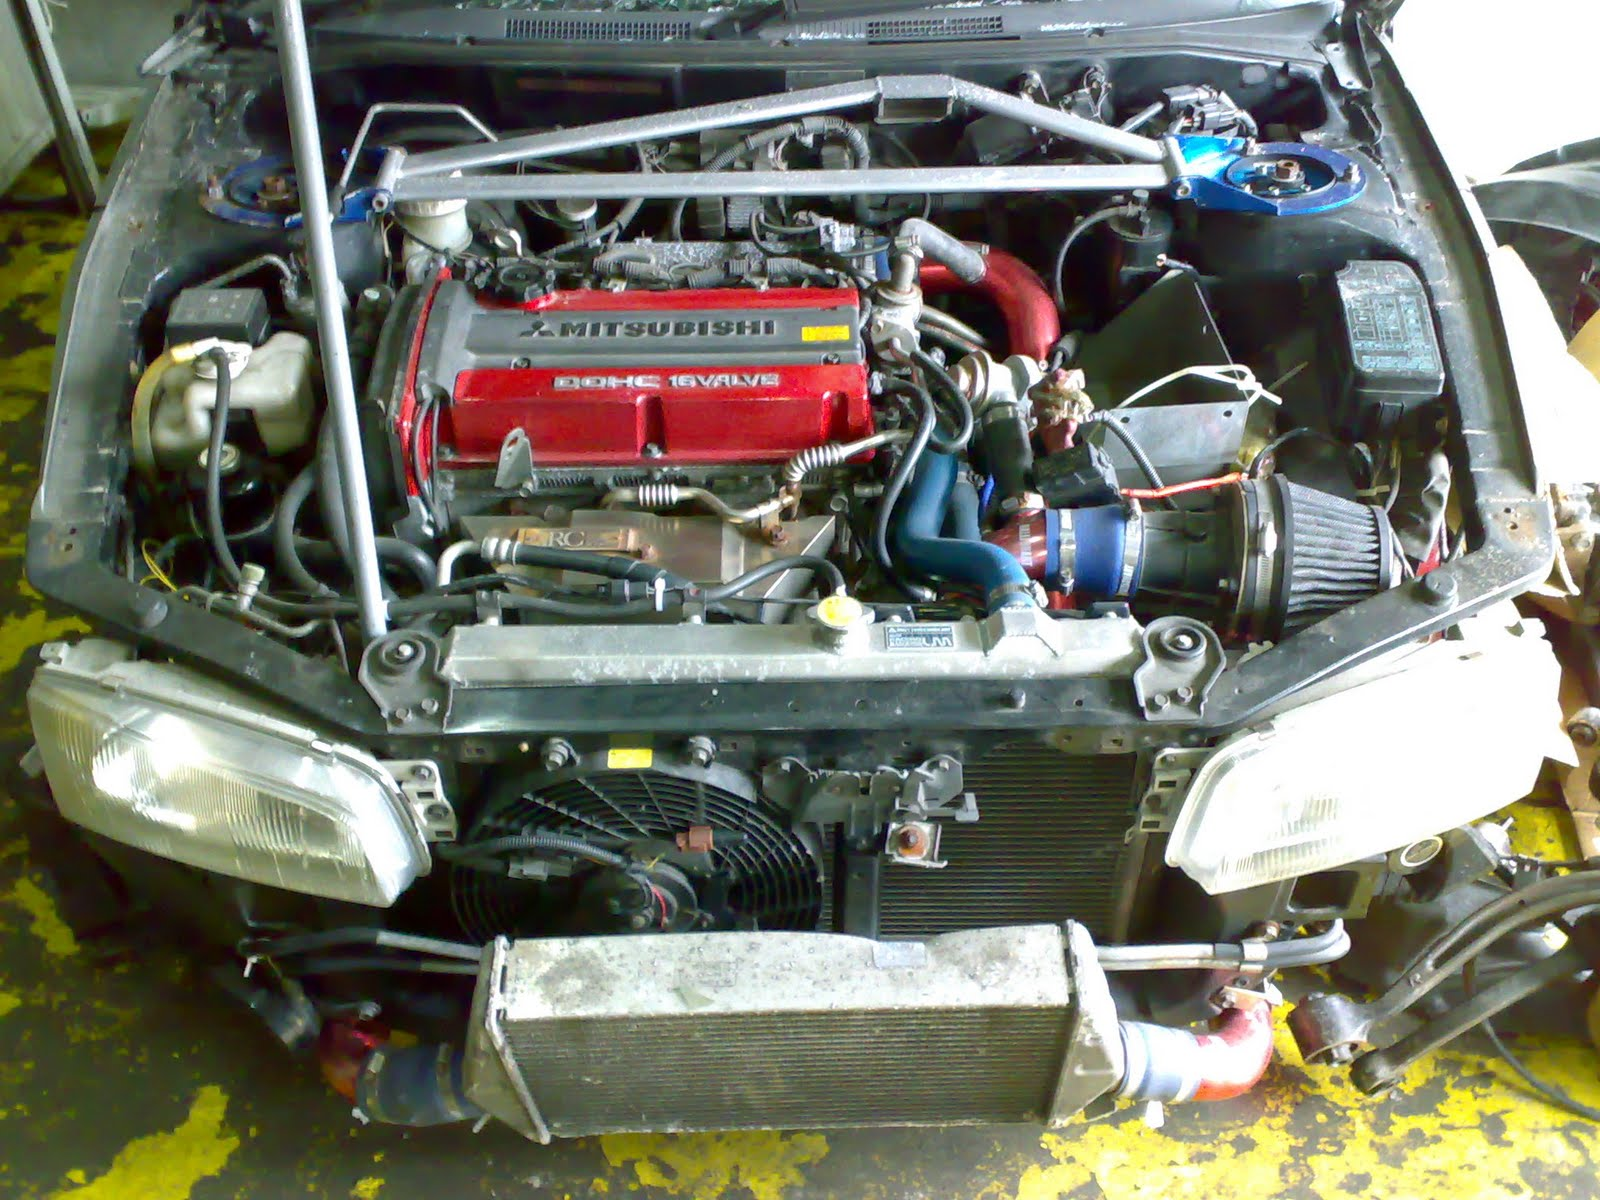 Mitsubishi Lancer EVO 4 Upgarde To EVO 6 Half Cut CKD,Within Alot Branded Performance  Parts) *Without Interior*